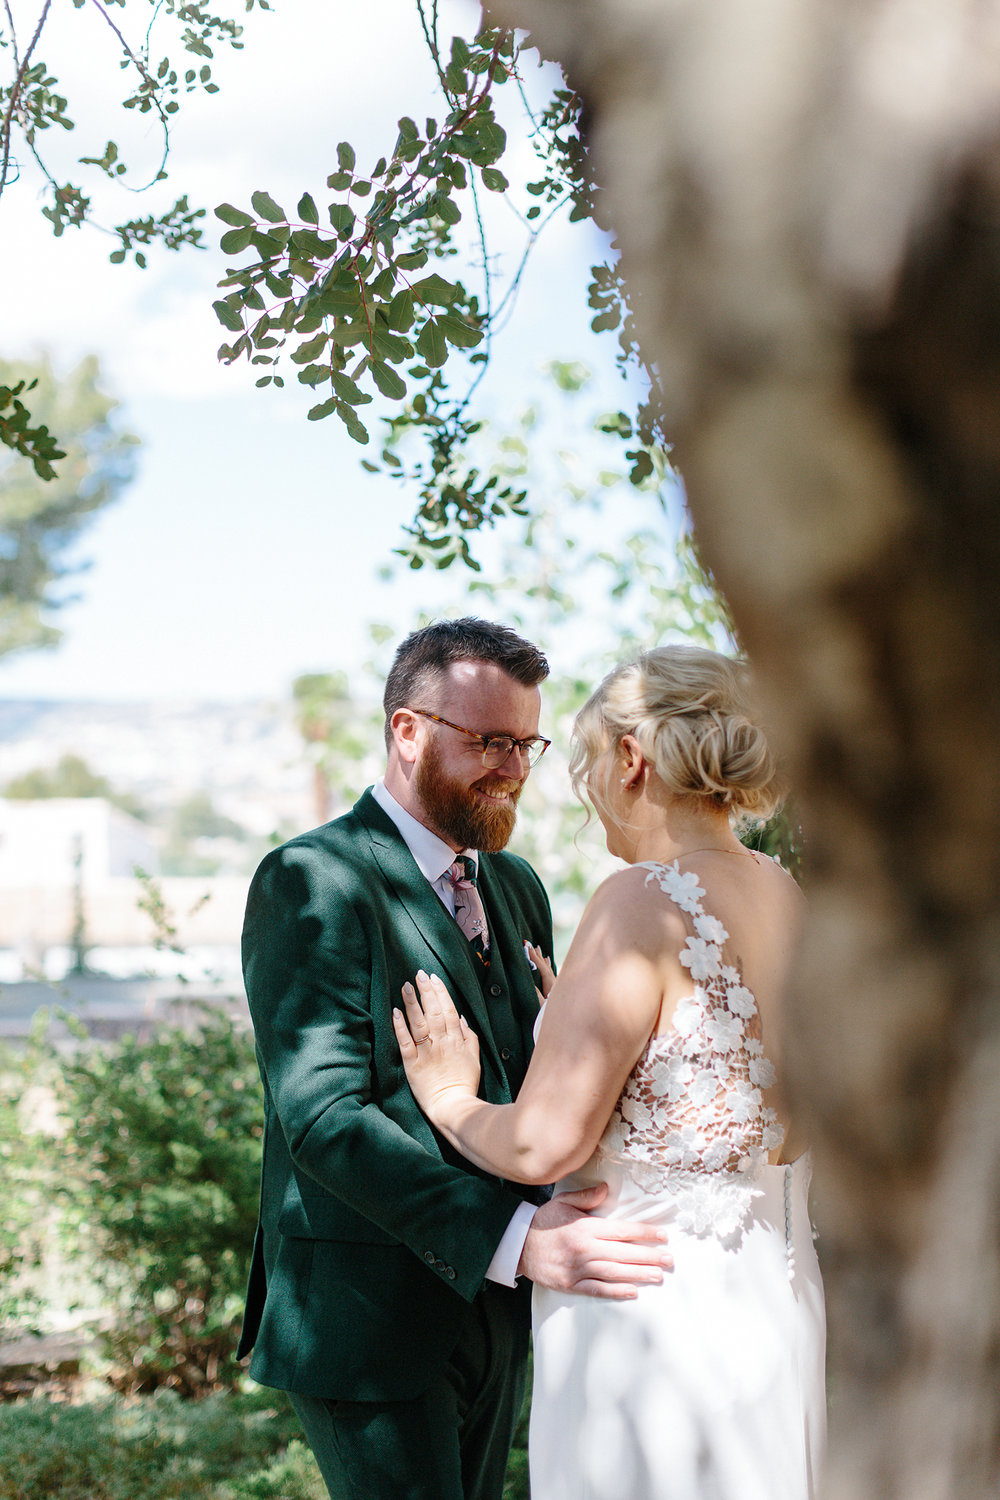 european-wedding-spain-wedding-photographer-destination-wedding-photographer-from-toronto-ryanne-hollies-photography-documentary-editorial-style-toronto-wedding-photographer-first-look-groom-and-bride-kissing-emotional-powerful-real-love.jpg